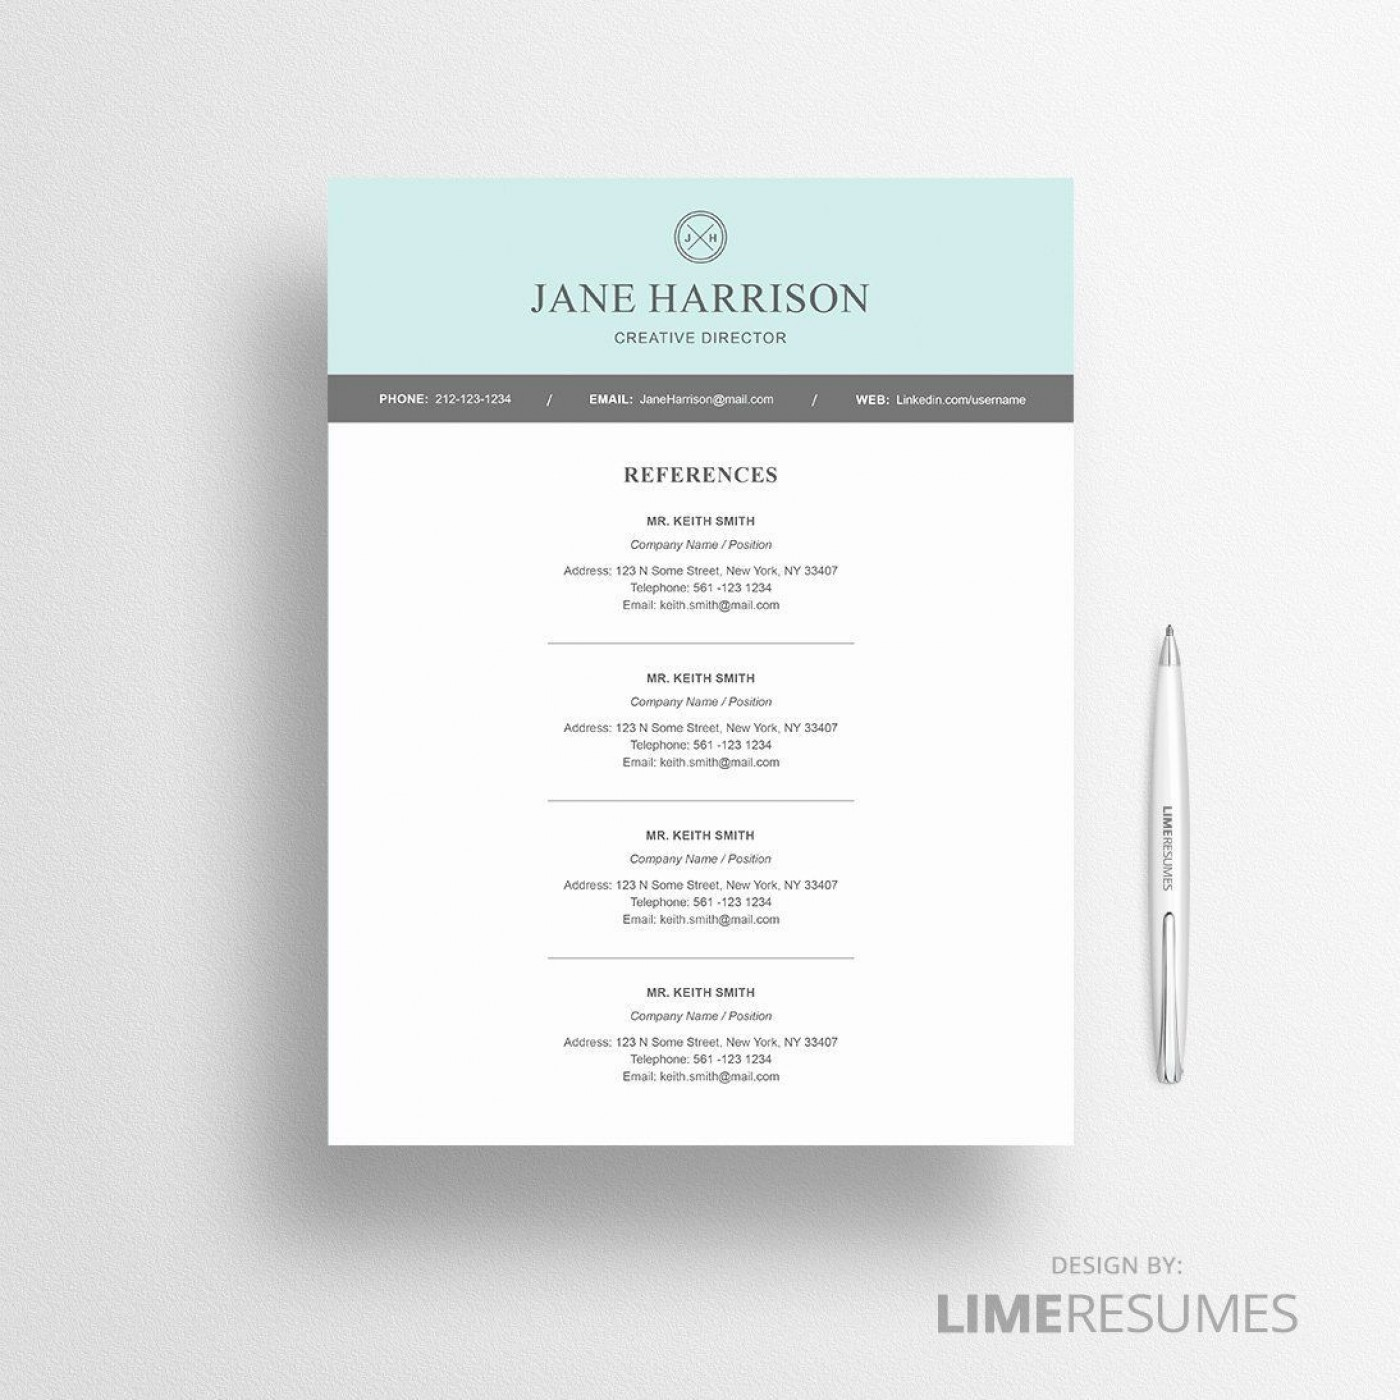 005 Unbelievable Resume Reference List Template Microsoft Word Design 1400